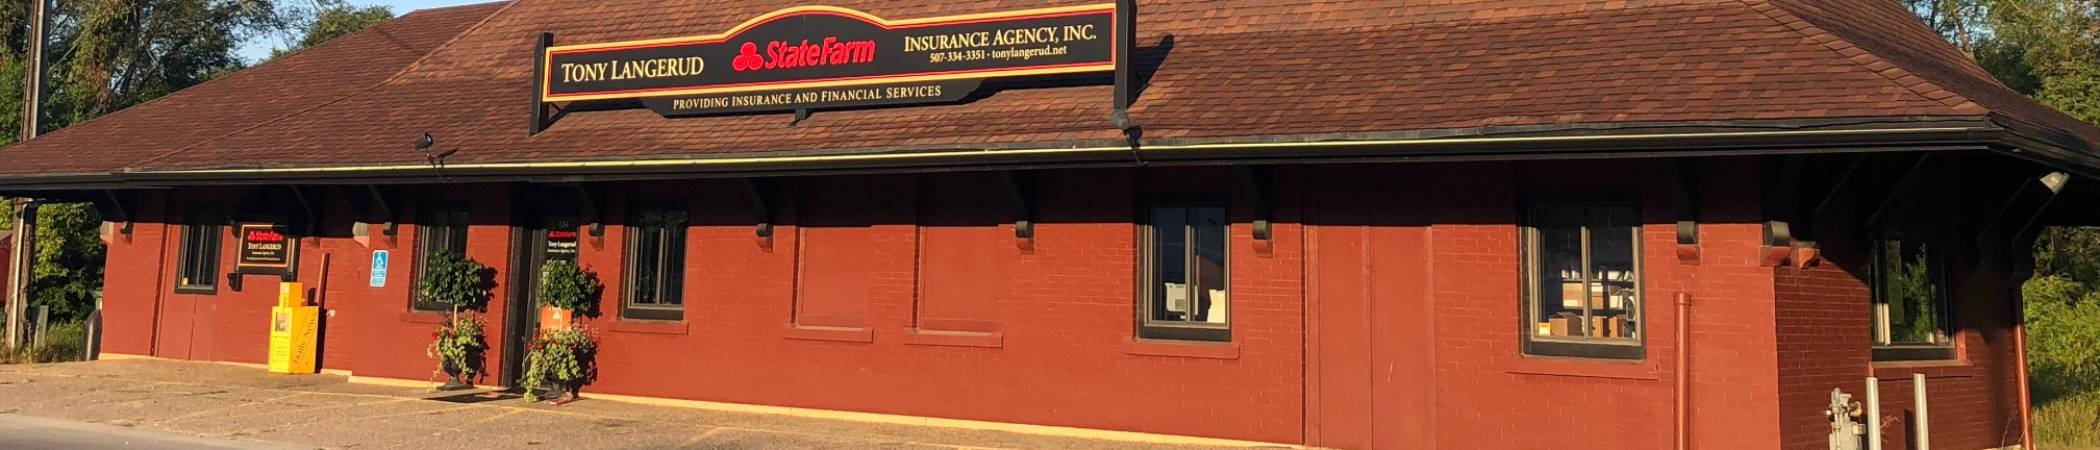 Tony Langerud State Farm Insurance in Faribault, MN | Home, Auto Insurance & more